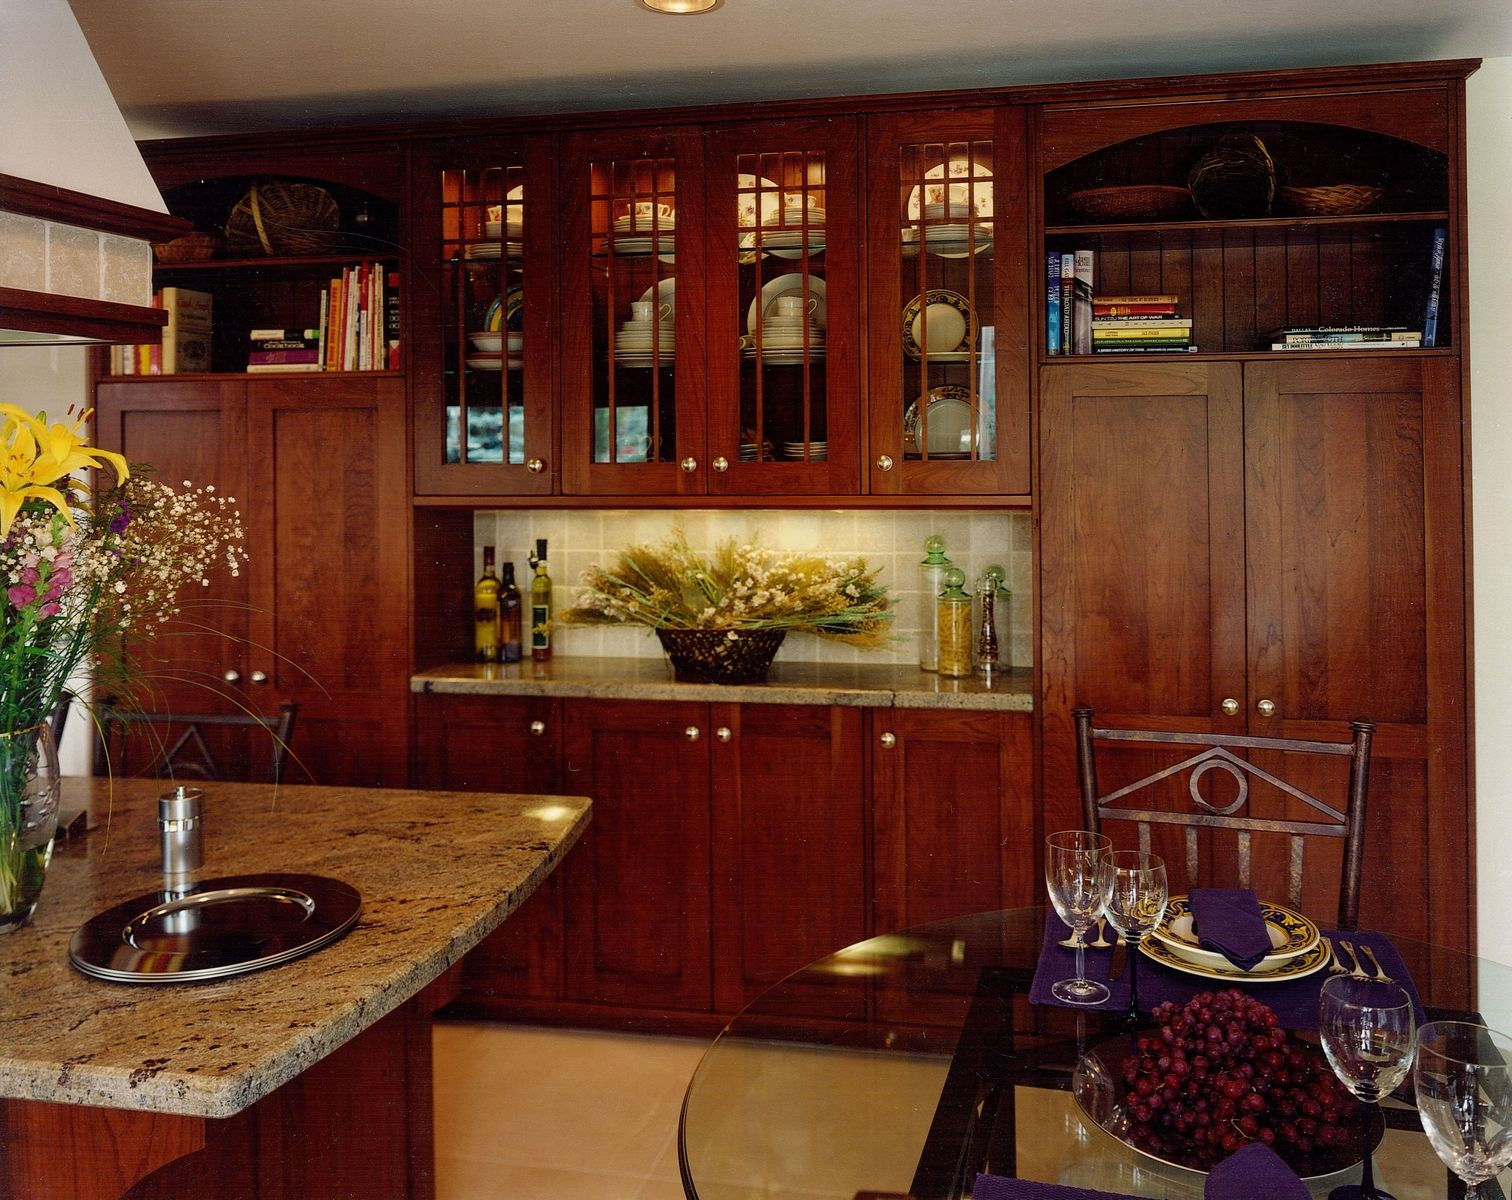 custom made arts crafts kitchen remodel of cherry wood - Cherry Wood Kitchen Cabinet